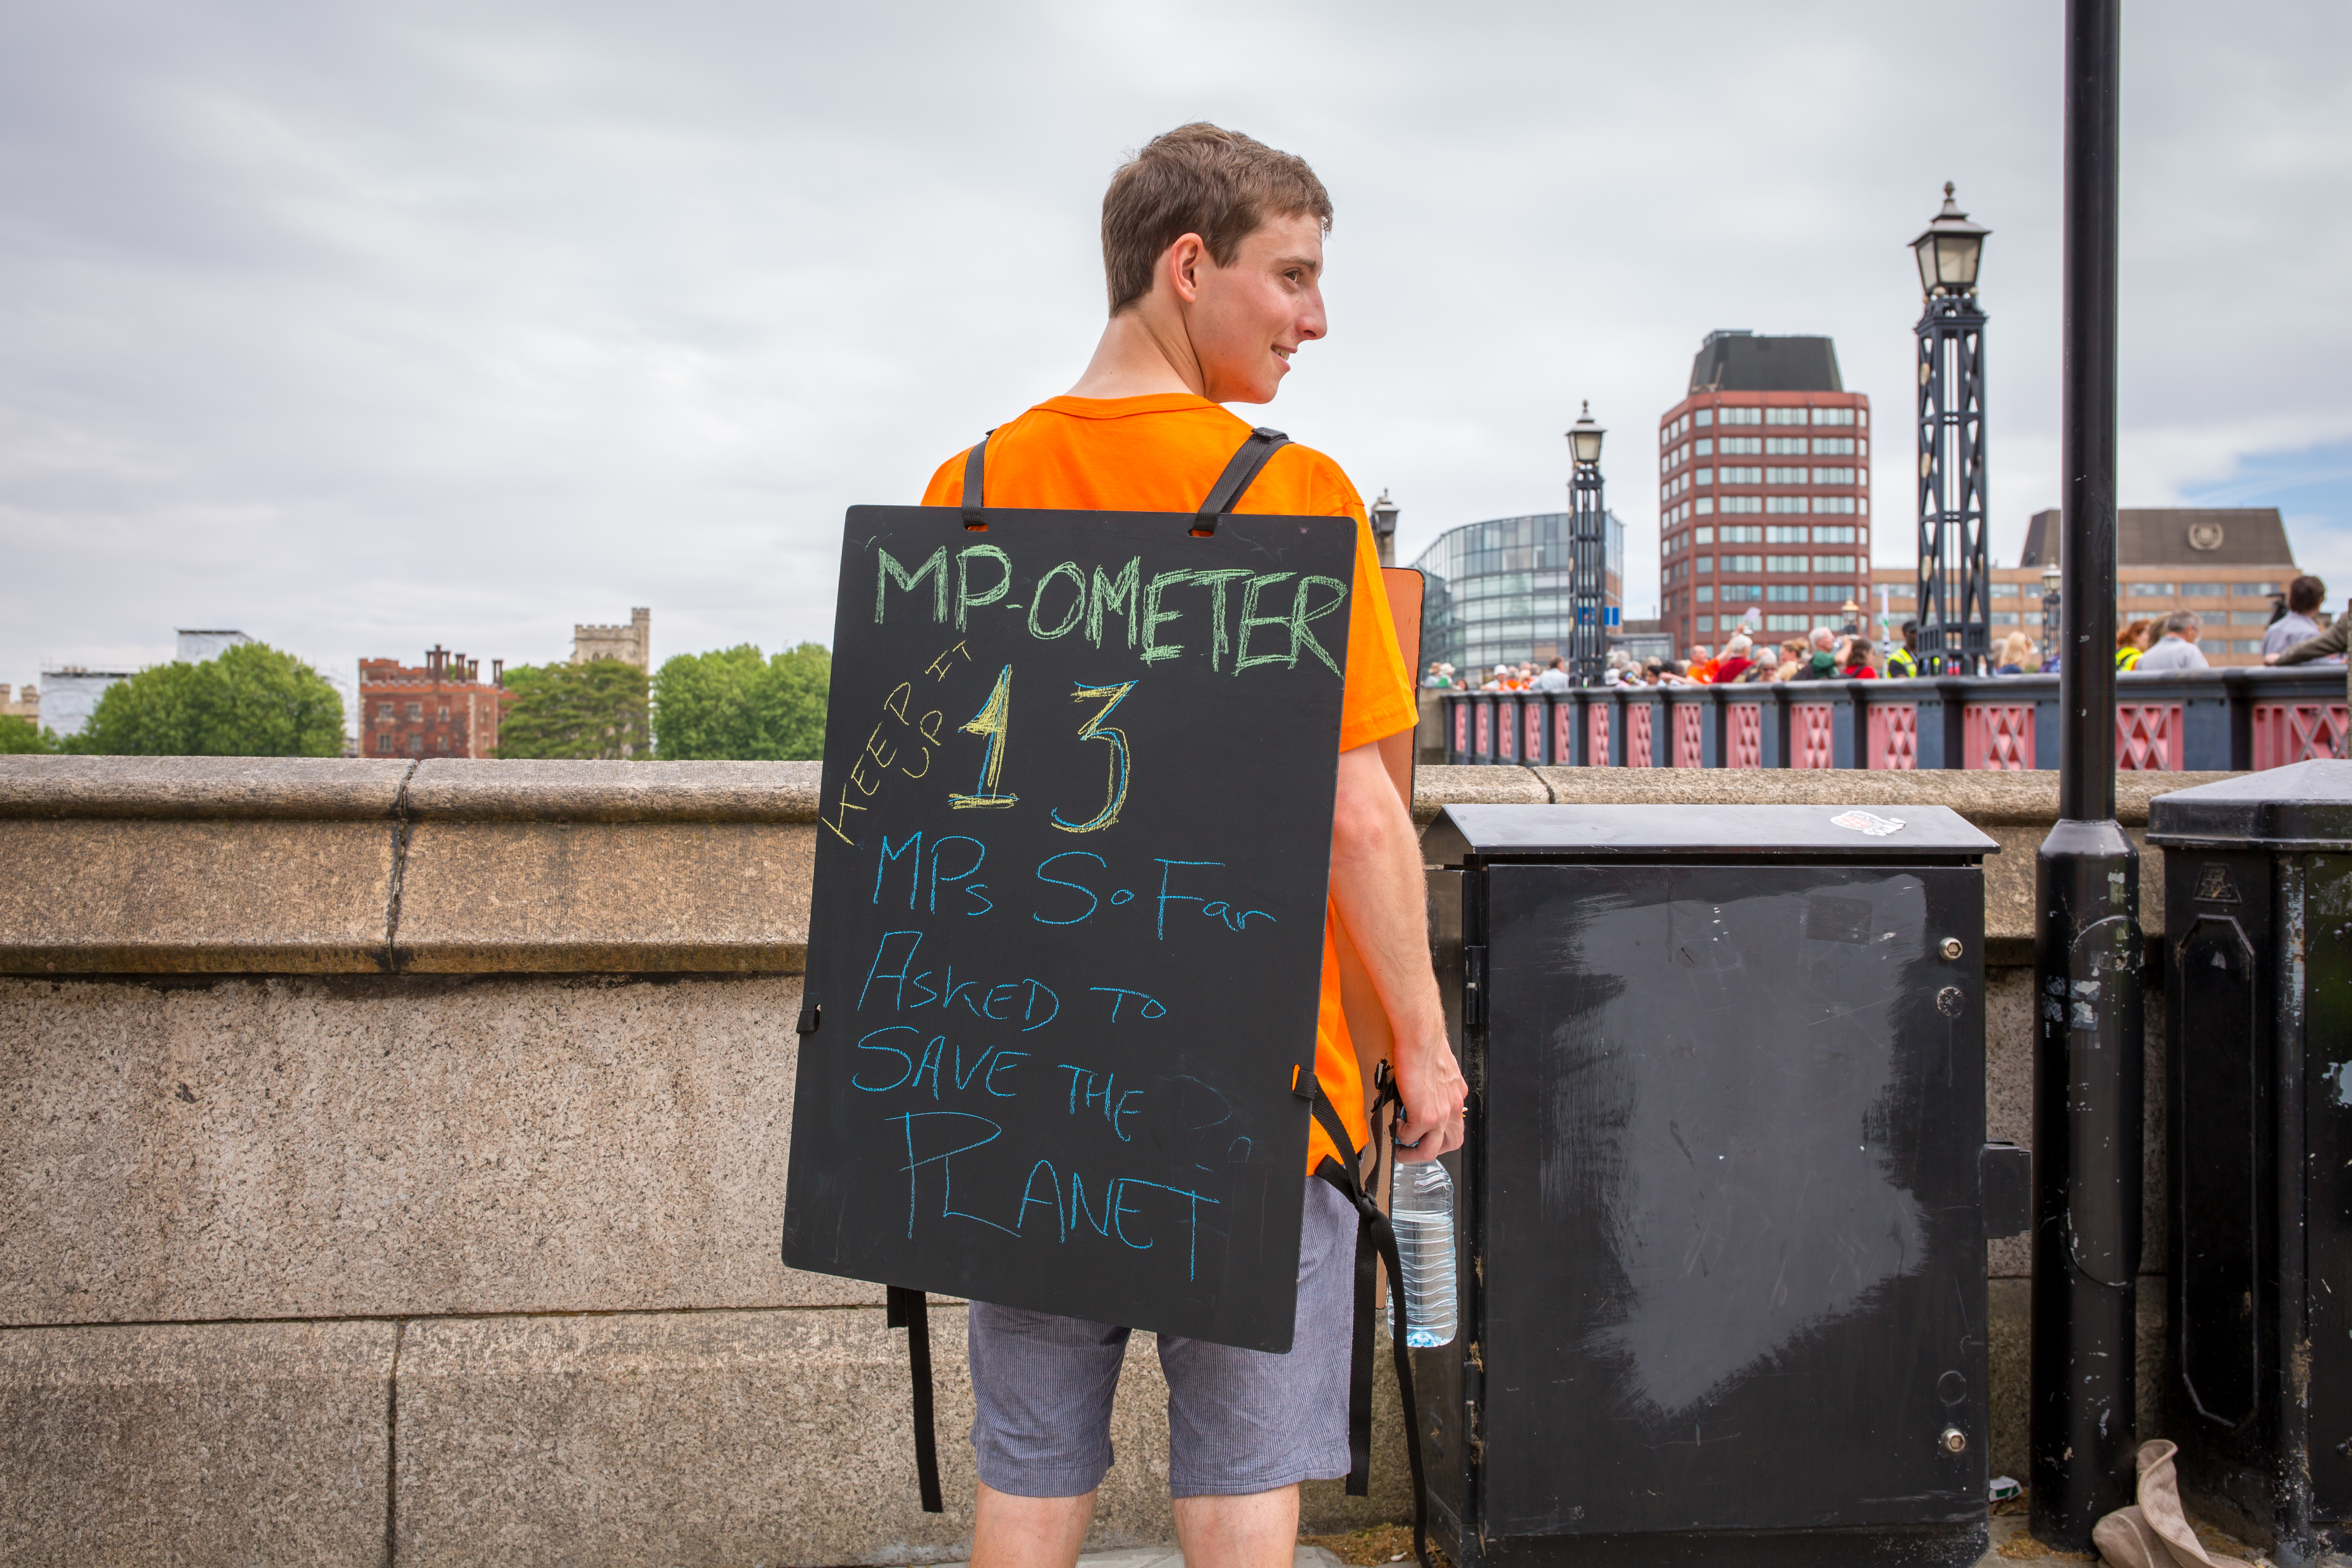 MP-o-meter at climate lobby of parliament - CAFOD